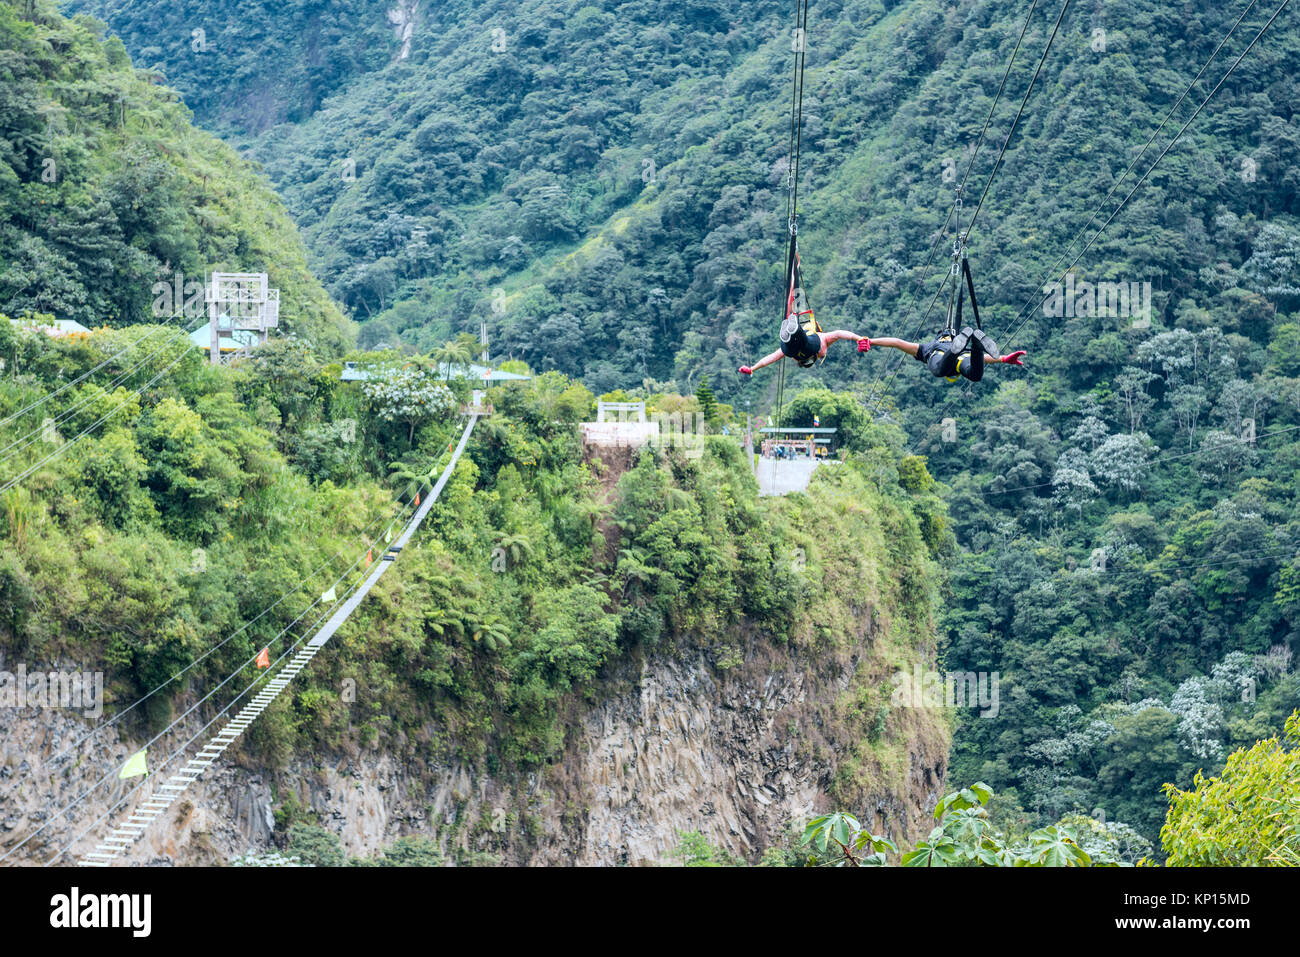 Cascades route, Banos, Ecuador - December 8, 2017: Tourists gliding on the zip line trip against the canyon - Stock Image